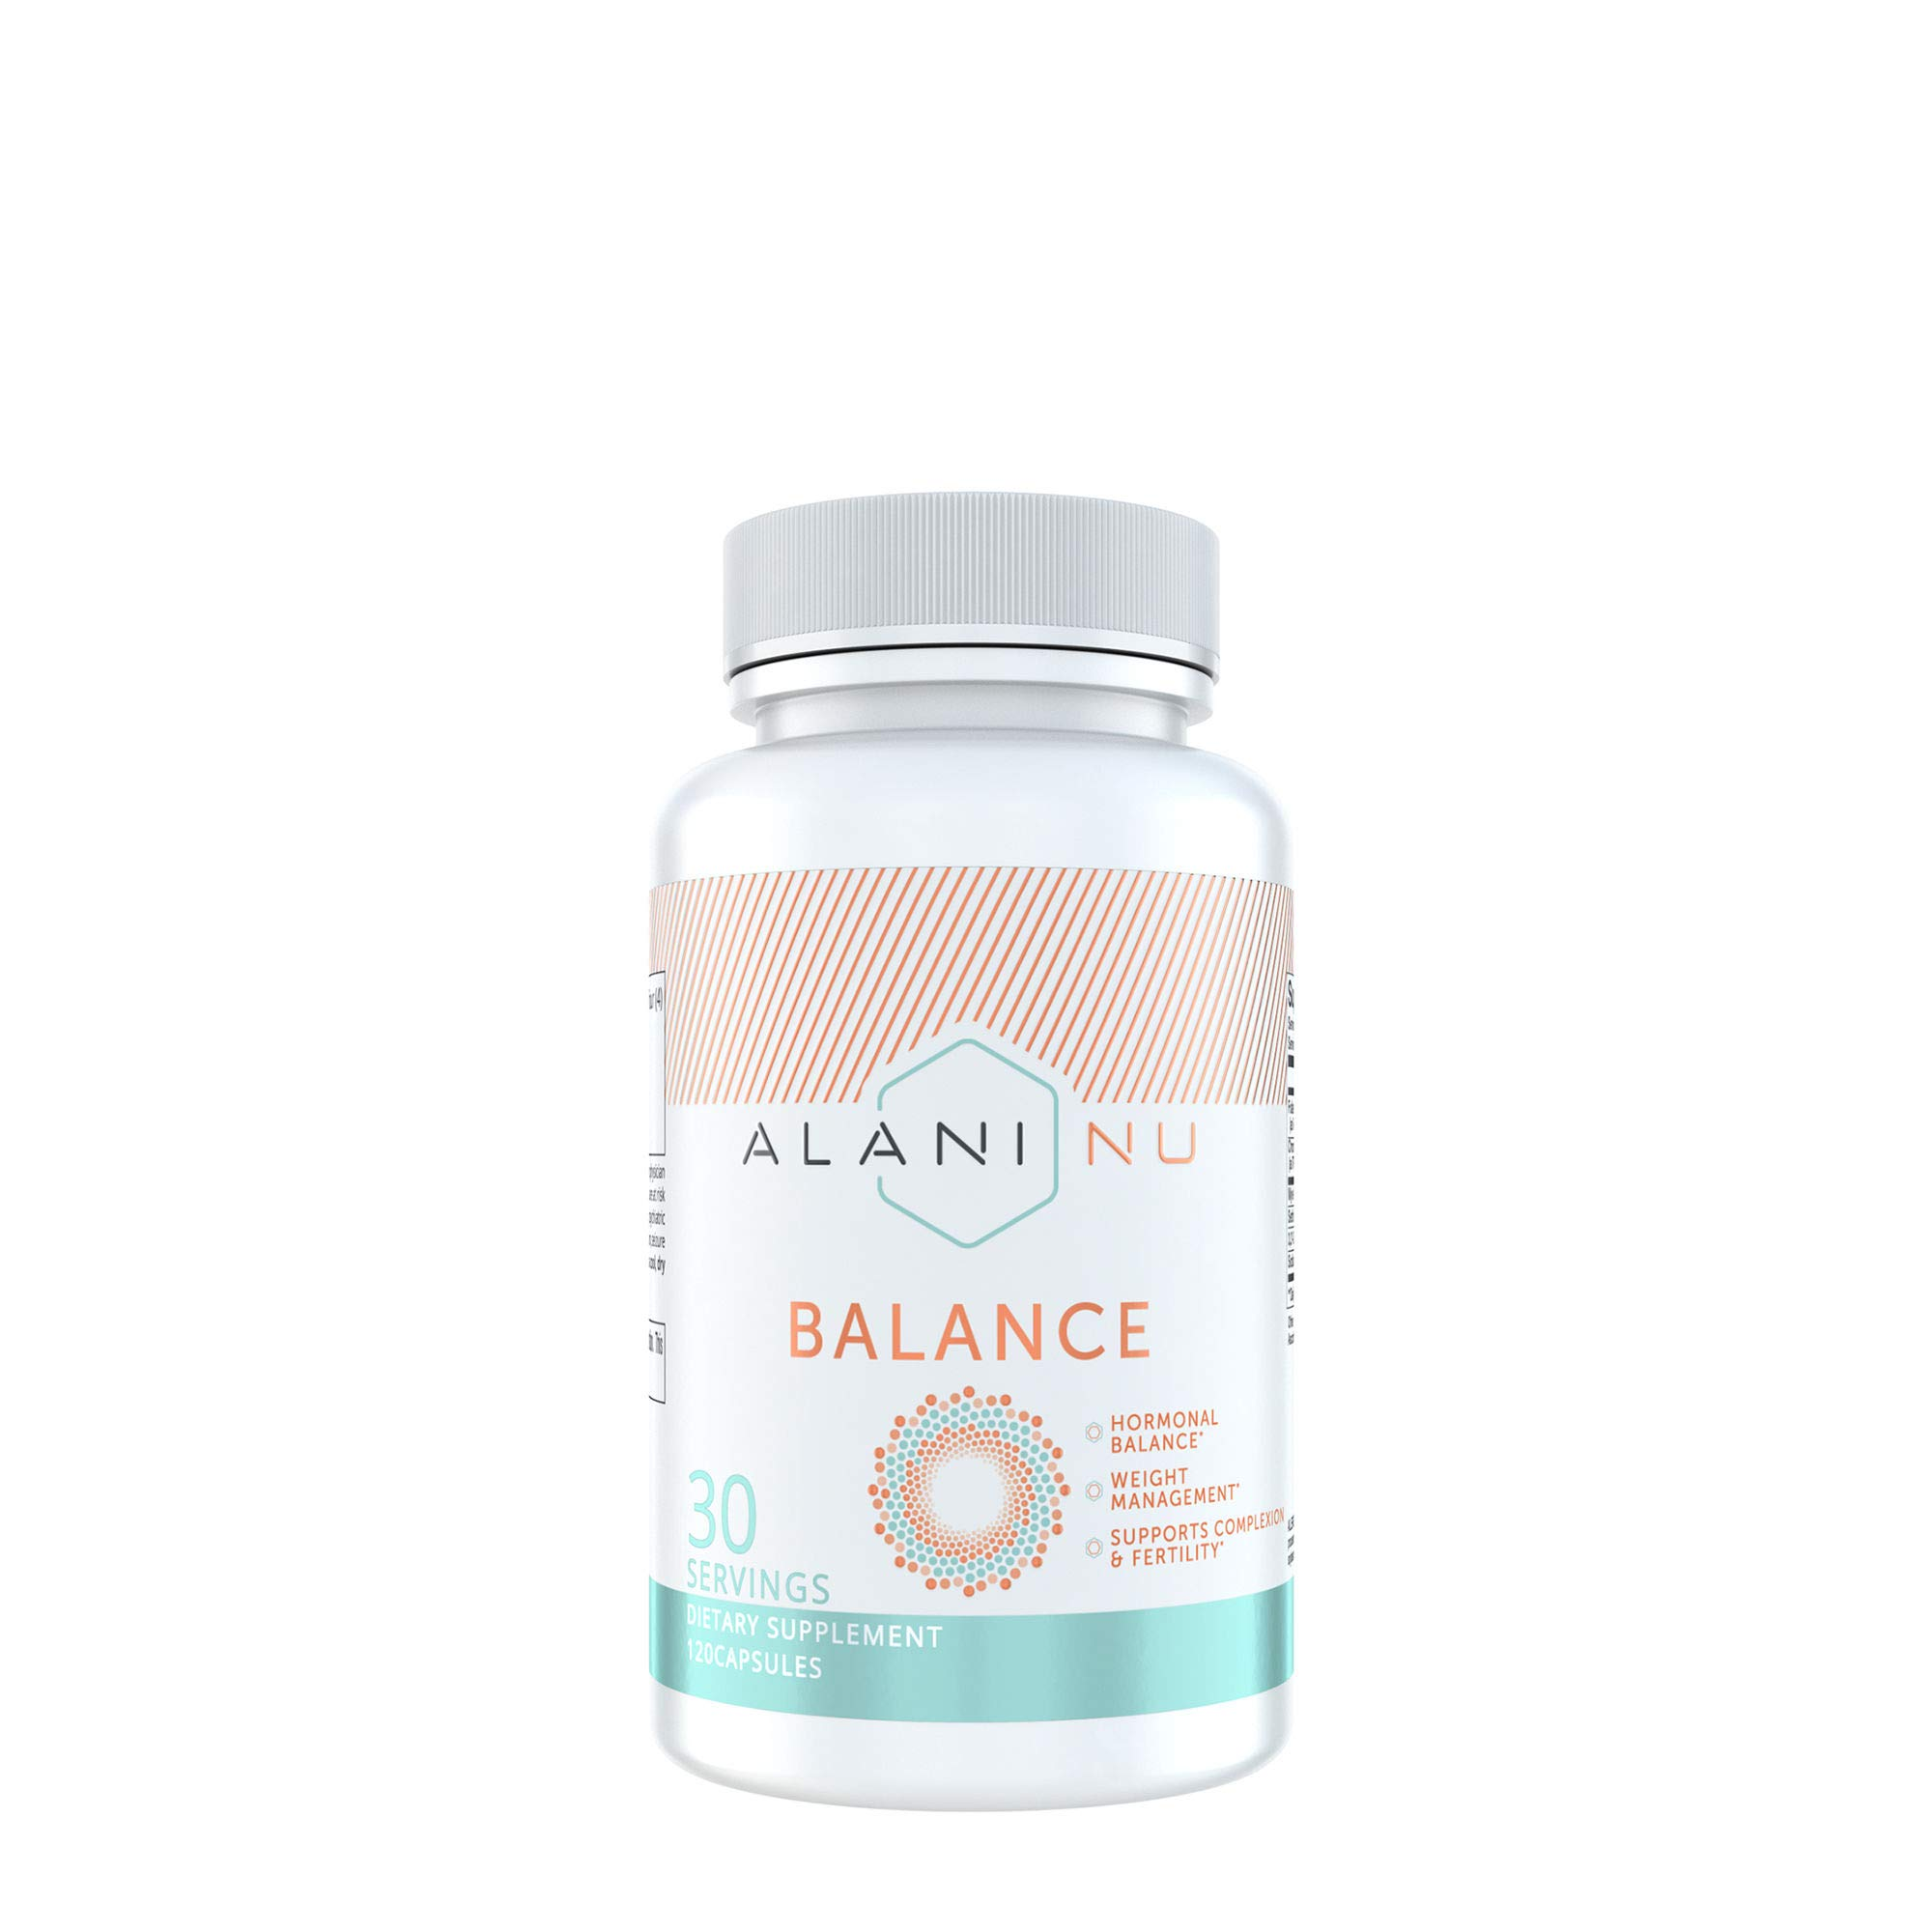 Alani Nu Hormonal Balance, Weight Management Support, Skin Complexion Support, 120 Capsules